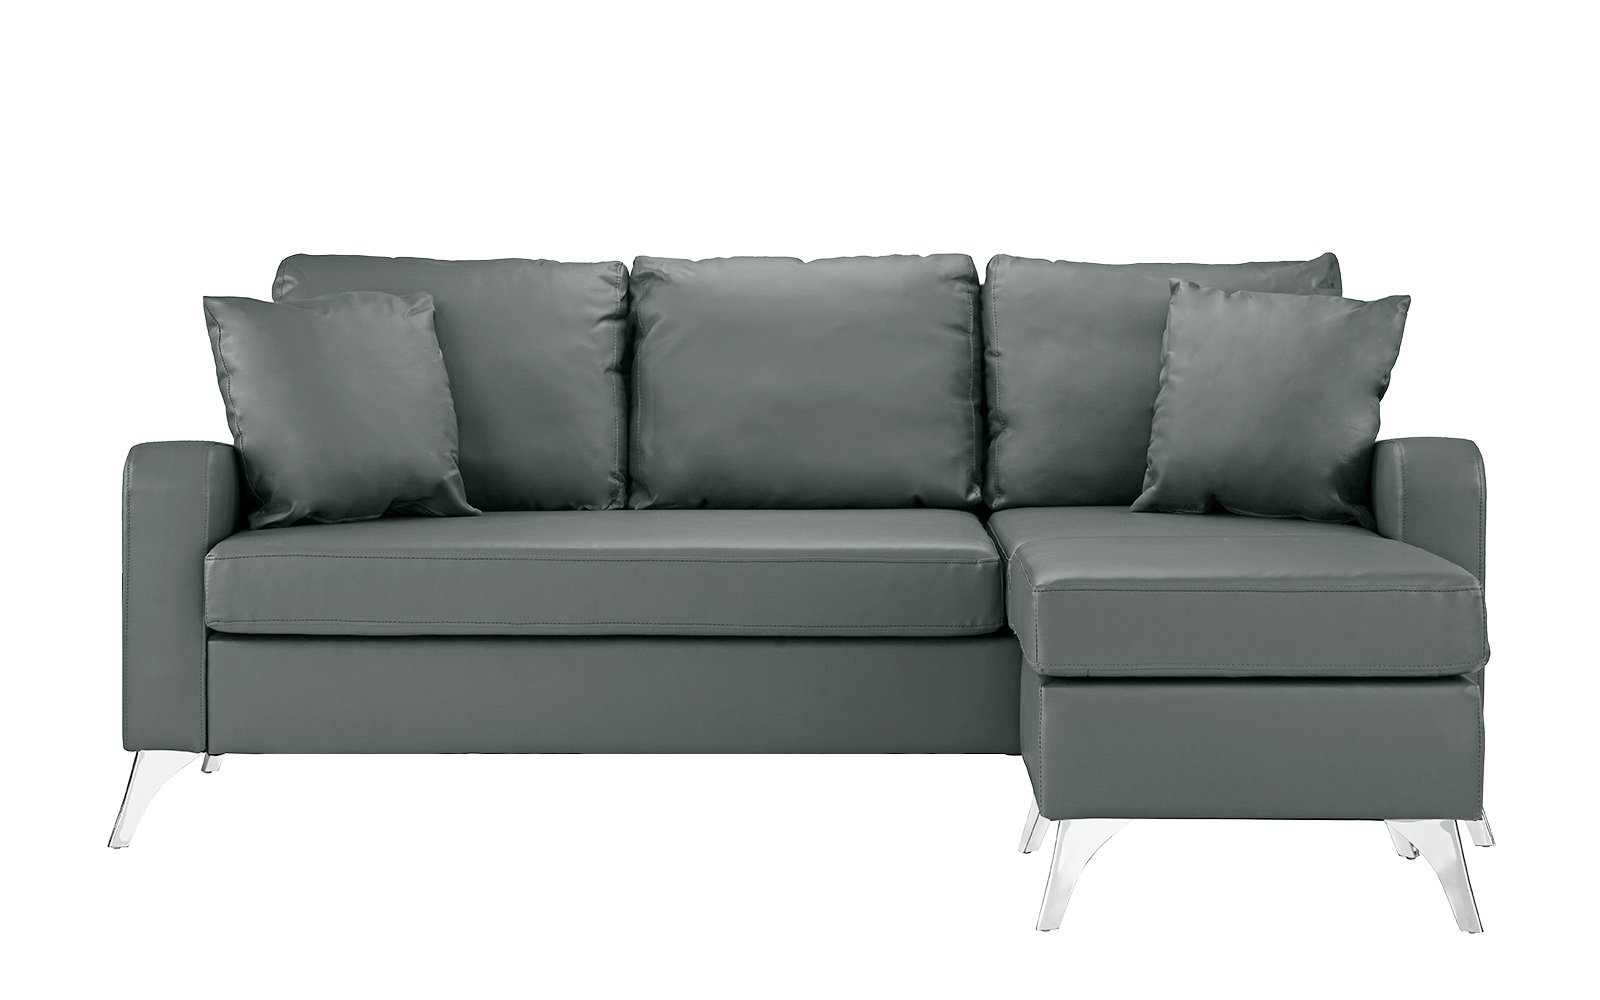 "Divano Roma Furniture Bonded Sectional, Light Grey - Bonded Leather small space reversible chaise sectional sofa Durable bonded leather upholstery with hardwood frame and chrome finish metal legs Measures: 76""W x 54""D x 34""H inches - sofas-couches, living-room-furniture, living-room - 61Bz9As90cL -"